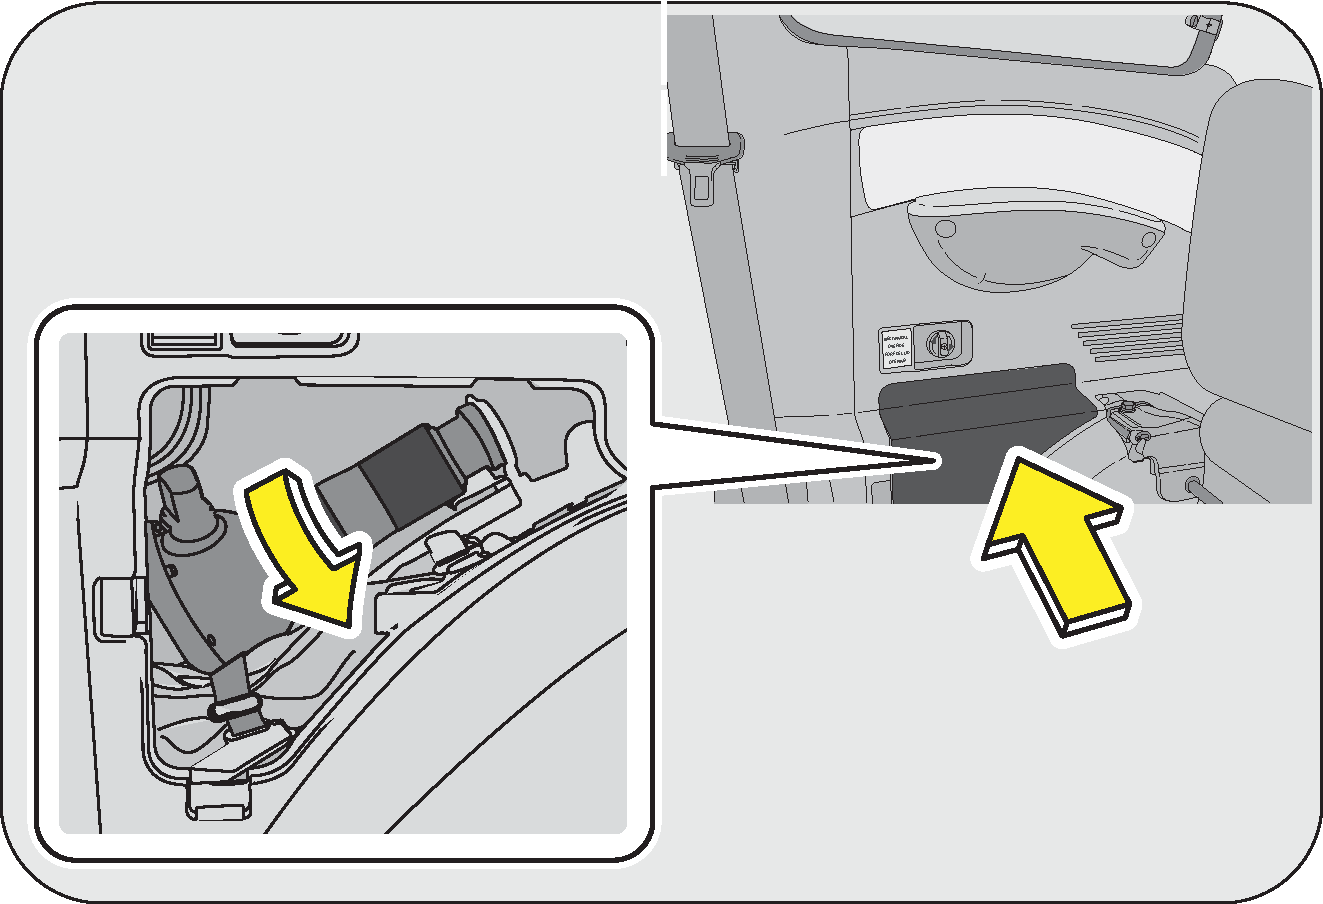 Owners Manual Micro Switch Seat Belt Open Wiring Diagram The Jack Extension And Warning Triangle Are Placed Beneath Front Passenger Slide Backwards Pull Velcro Access